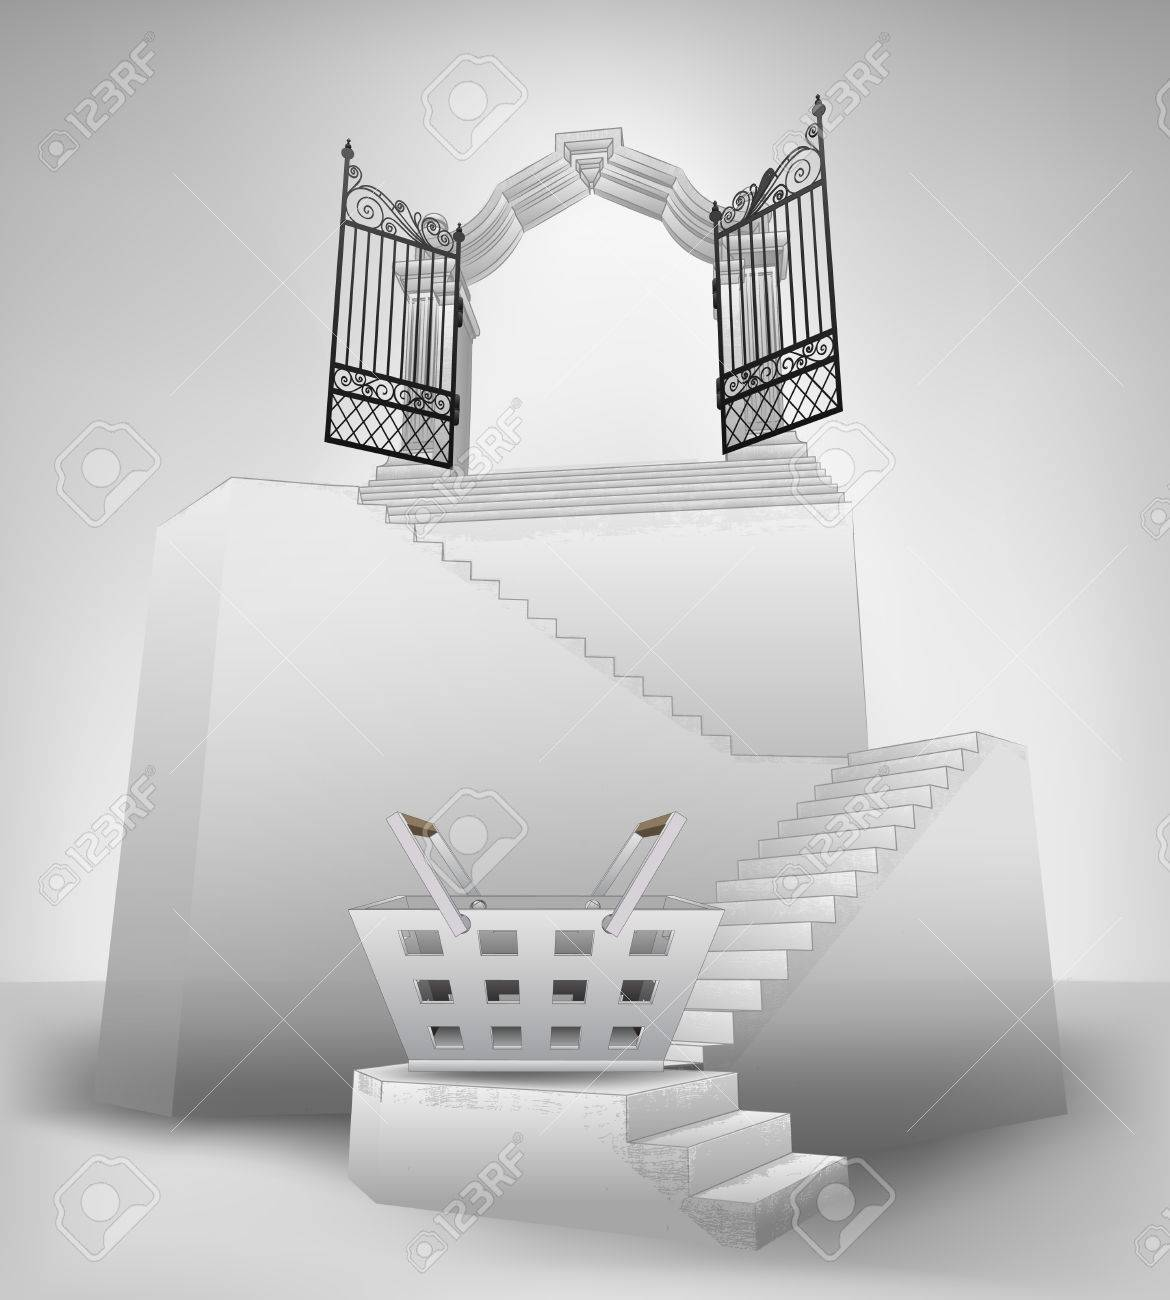 Shopping Basket On Stairway With Entrance Top Concept Vector Illustration  Stock Vector   26645196